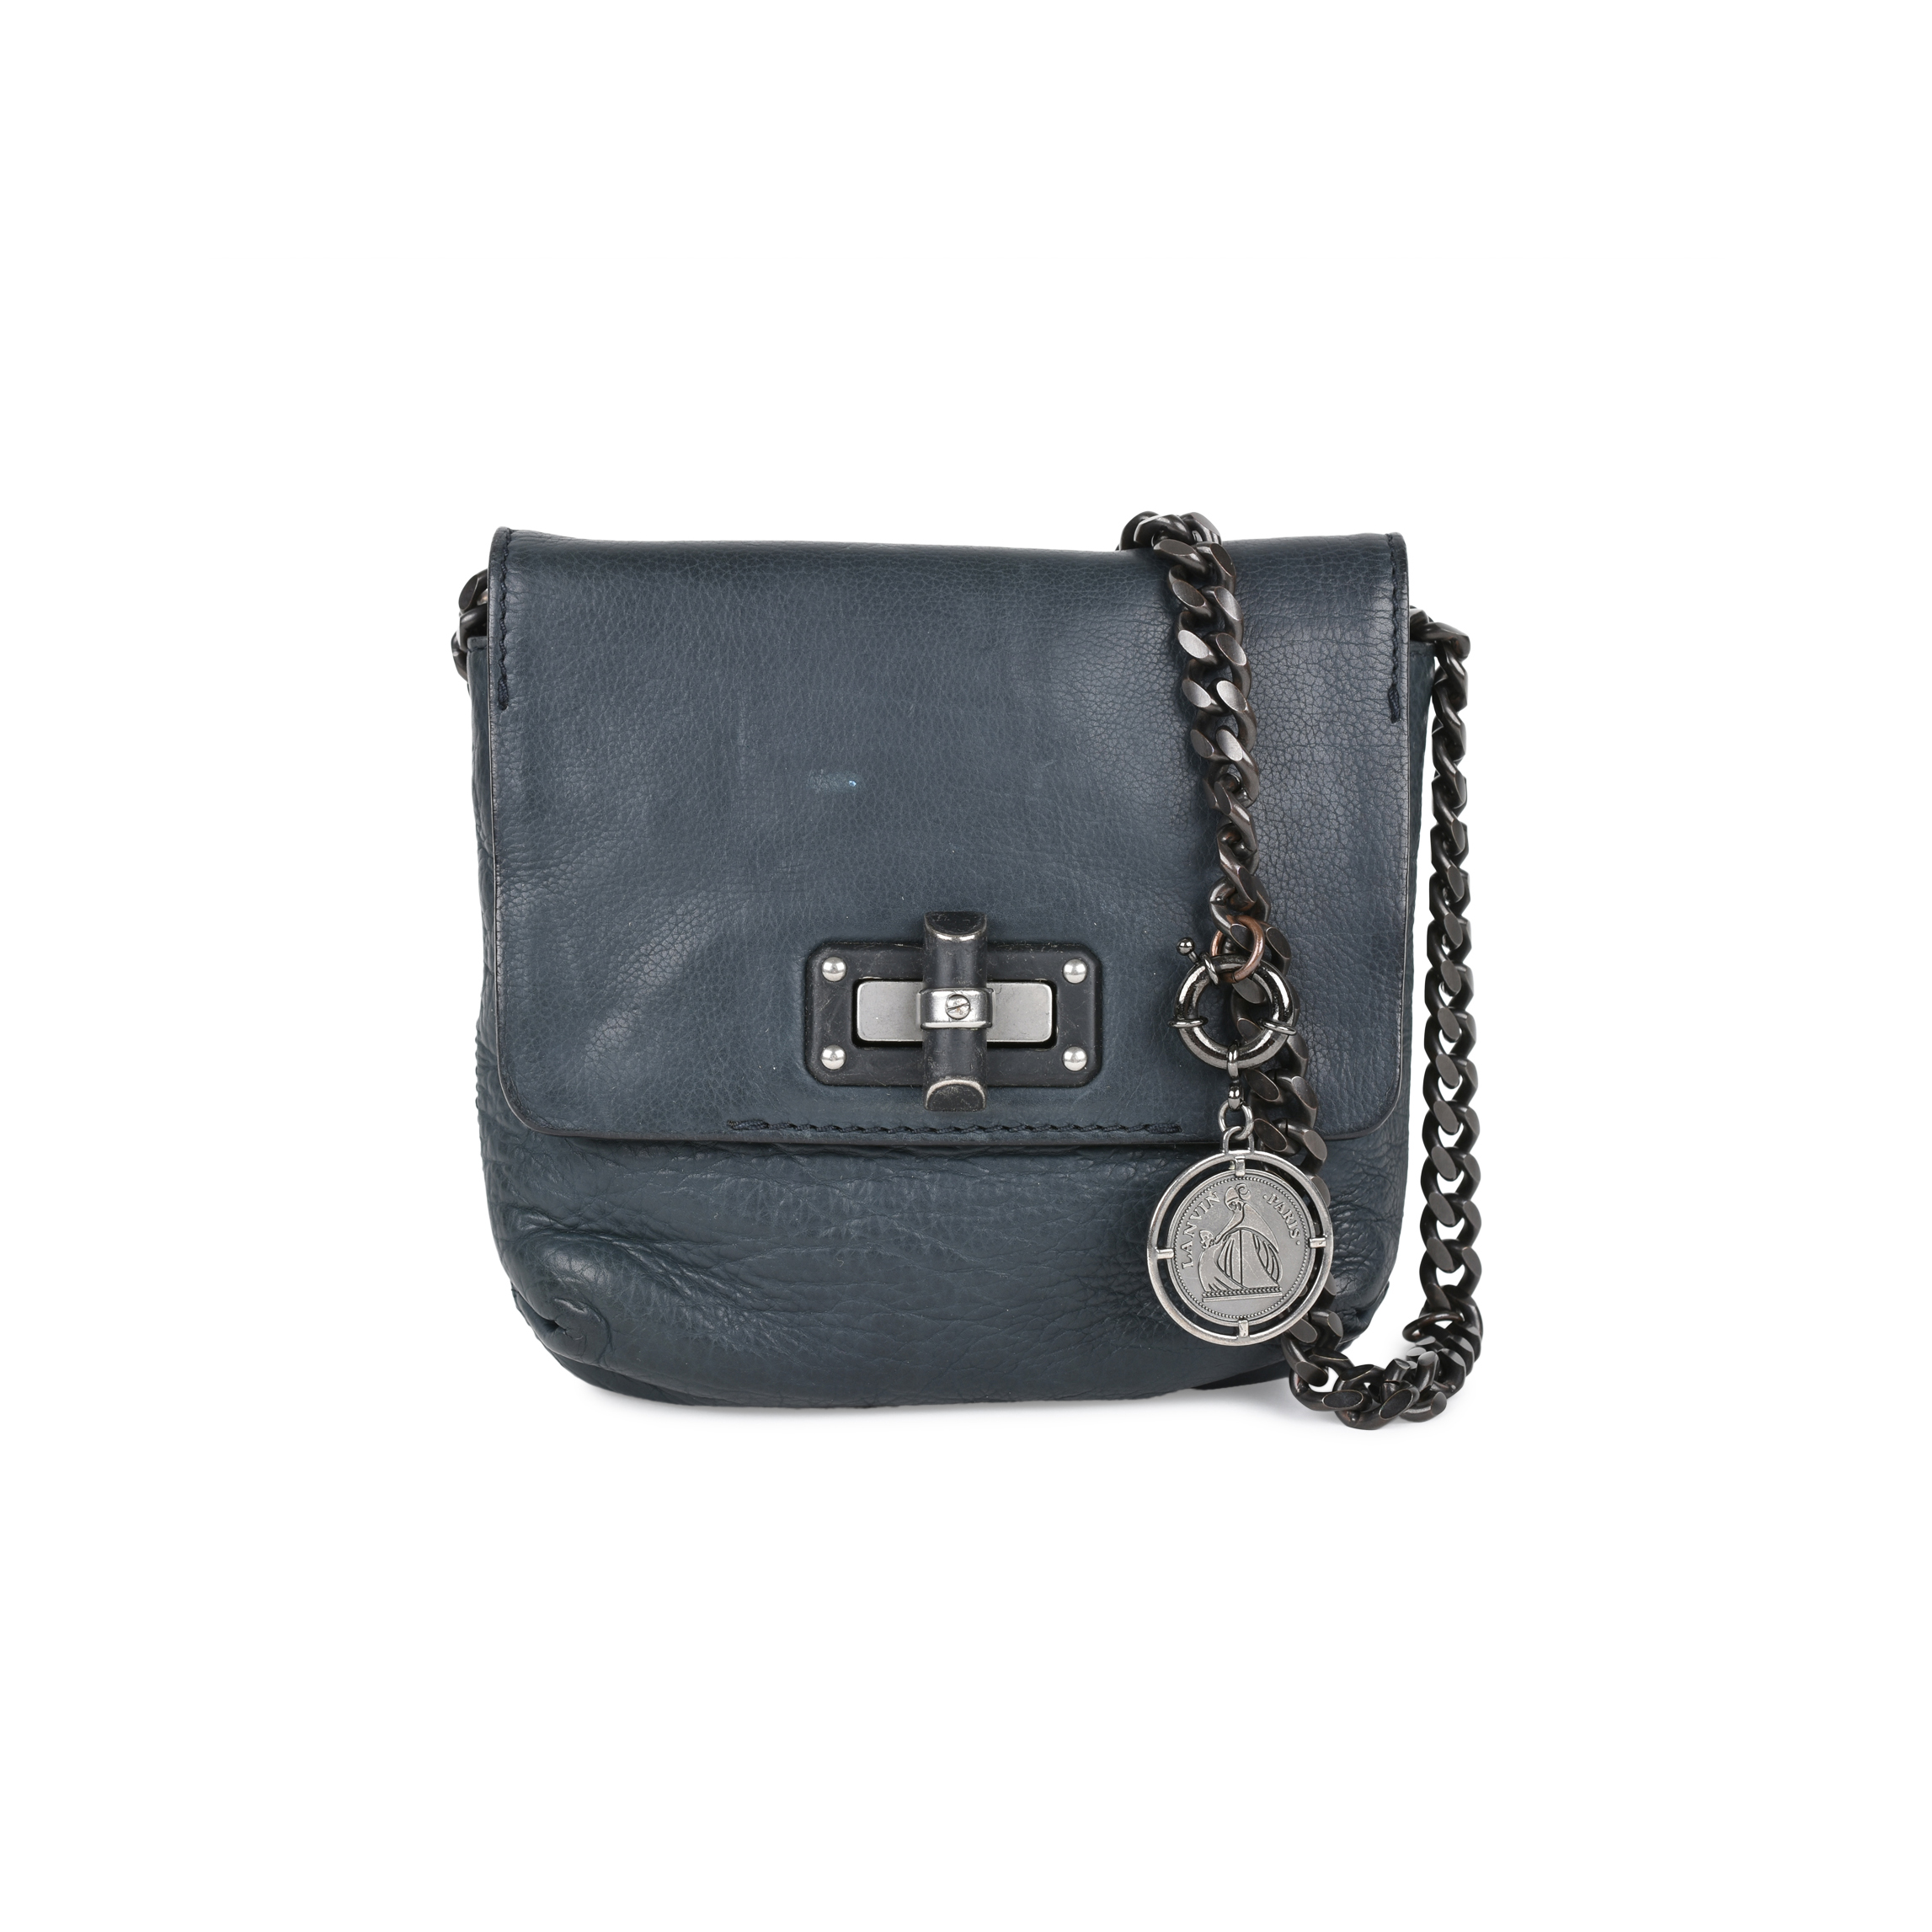 71f640b37 Authentic Second Hand Lanvin Happy Crossbody Bag (PSS-520-00003) - THE  FIFTH COLLECTION